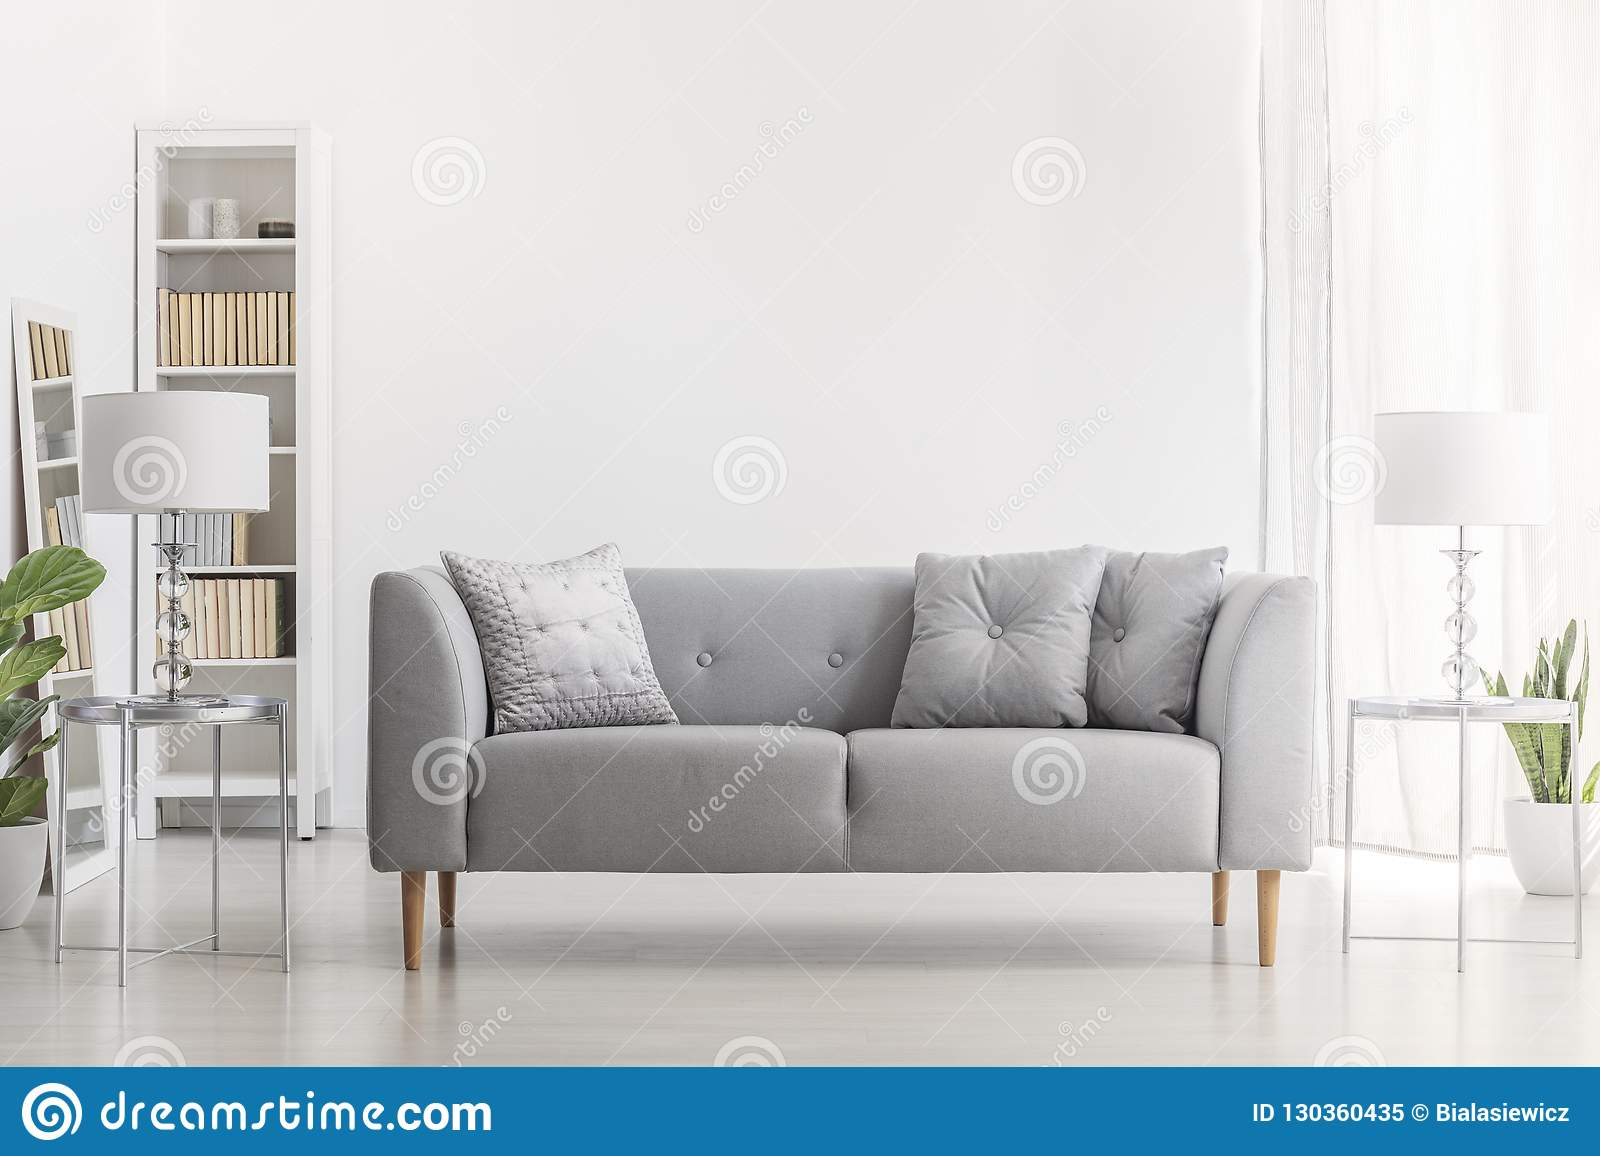 Marvelous Lamp On Silver Table Next To Grey Sofa With Pillows In White Uwap Interior Chair Design Uwaporg